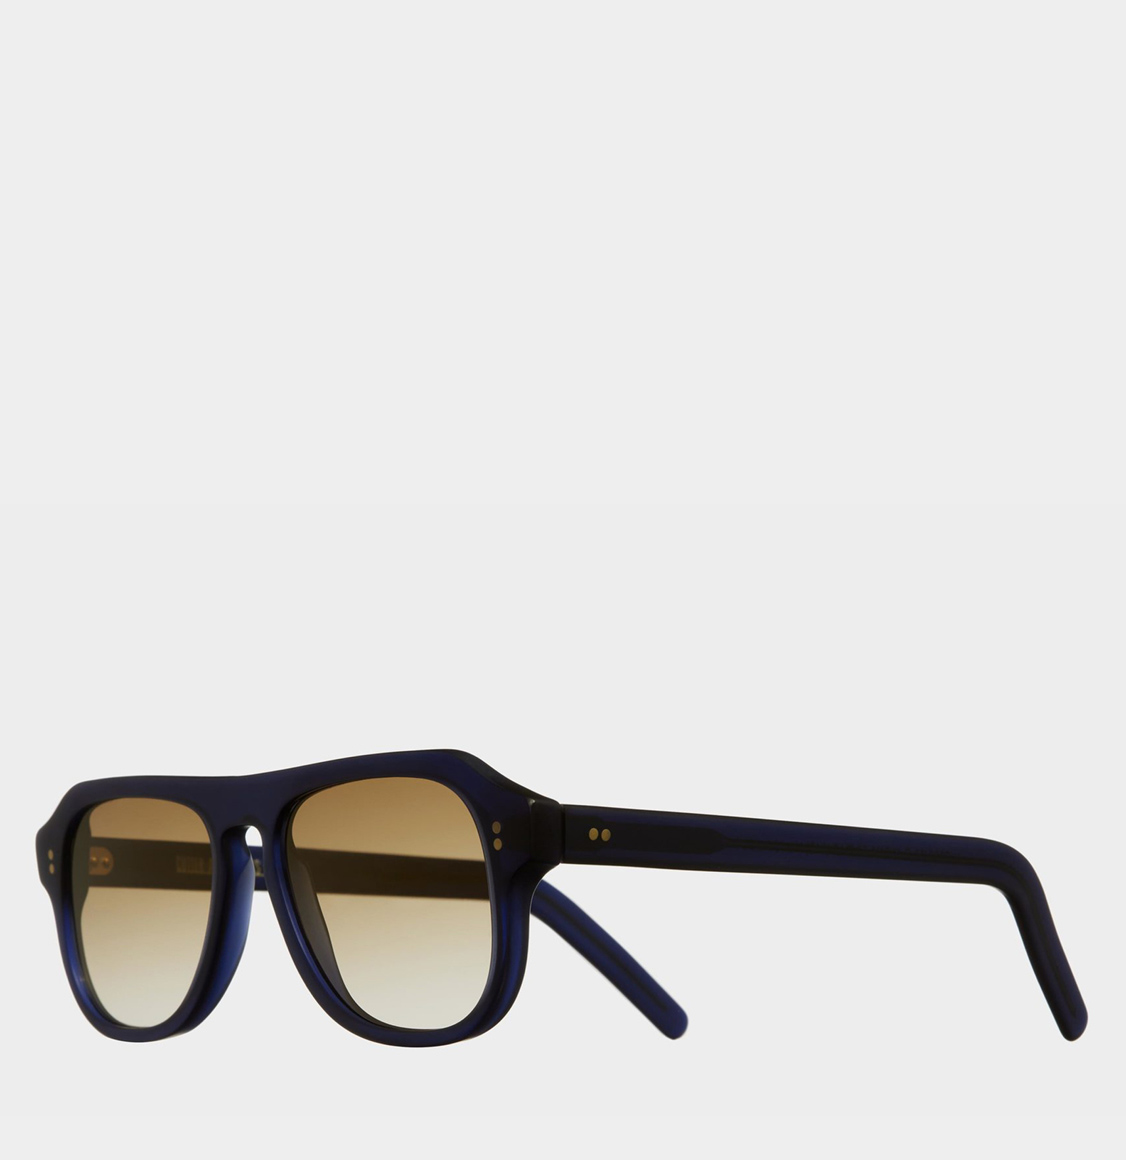 Cutler and Gross 0822 Navy Blue Γυαλιά Ηλίου